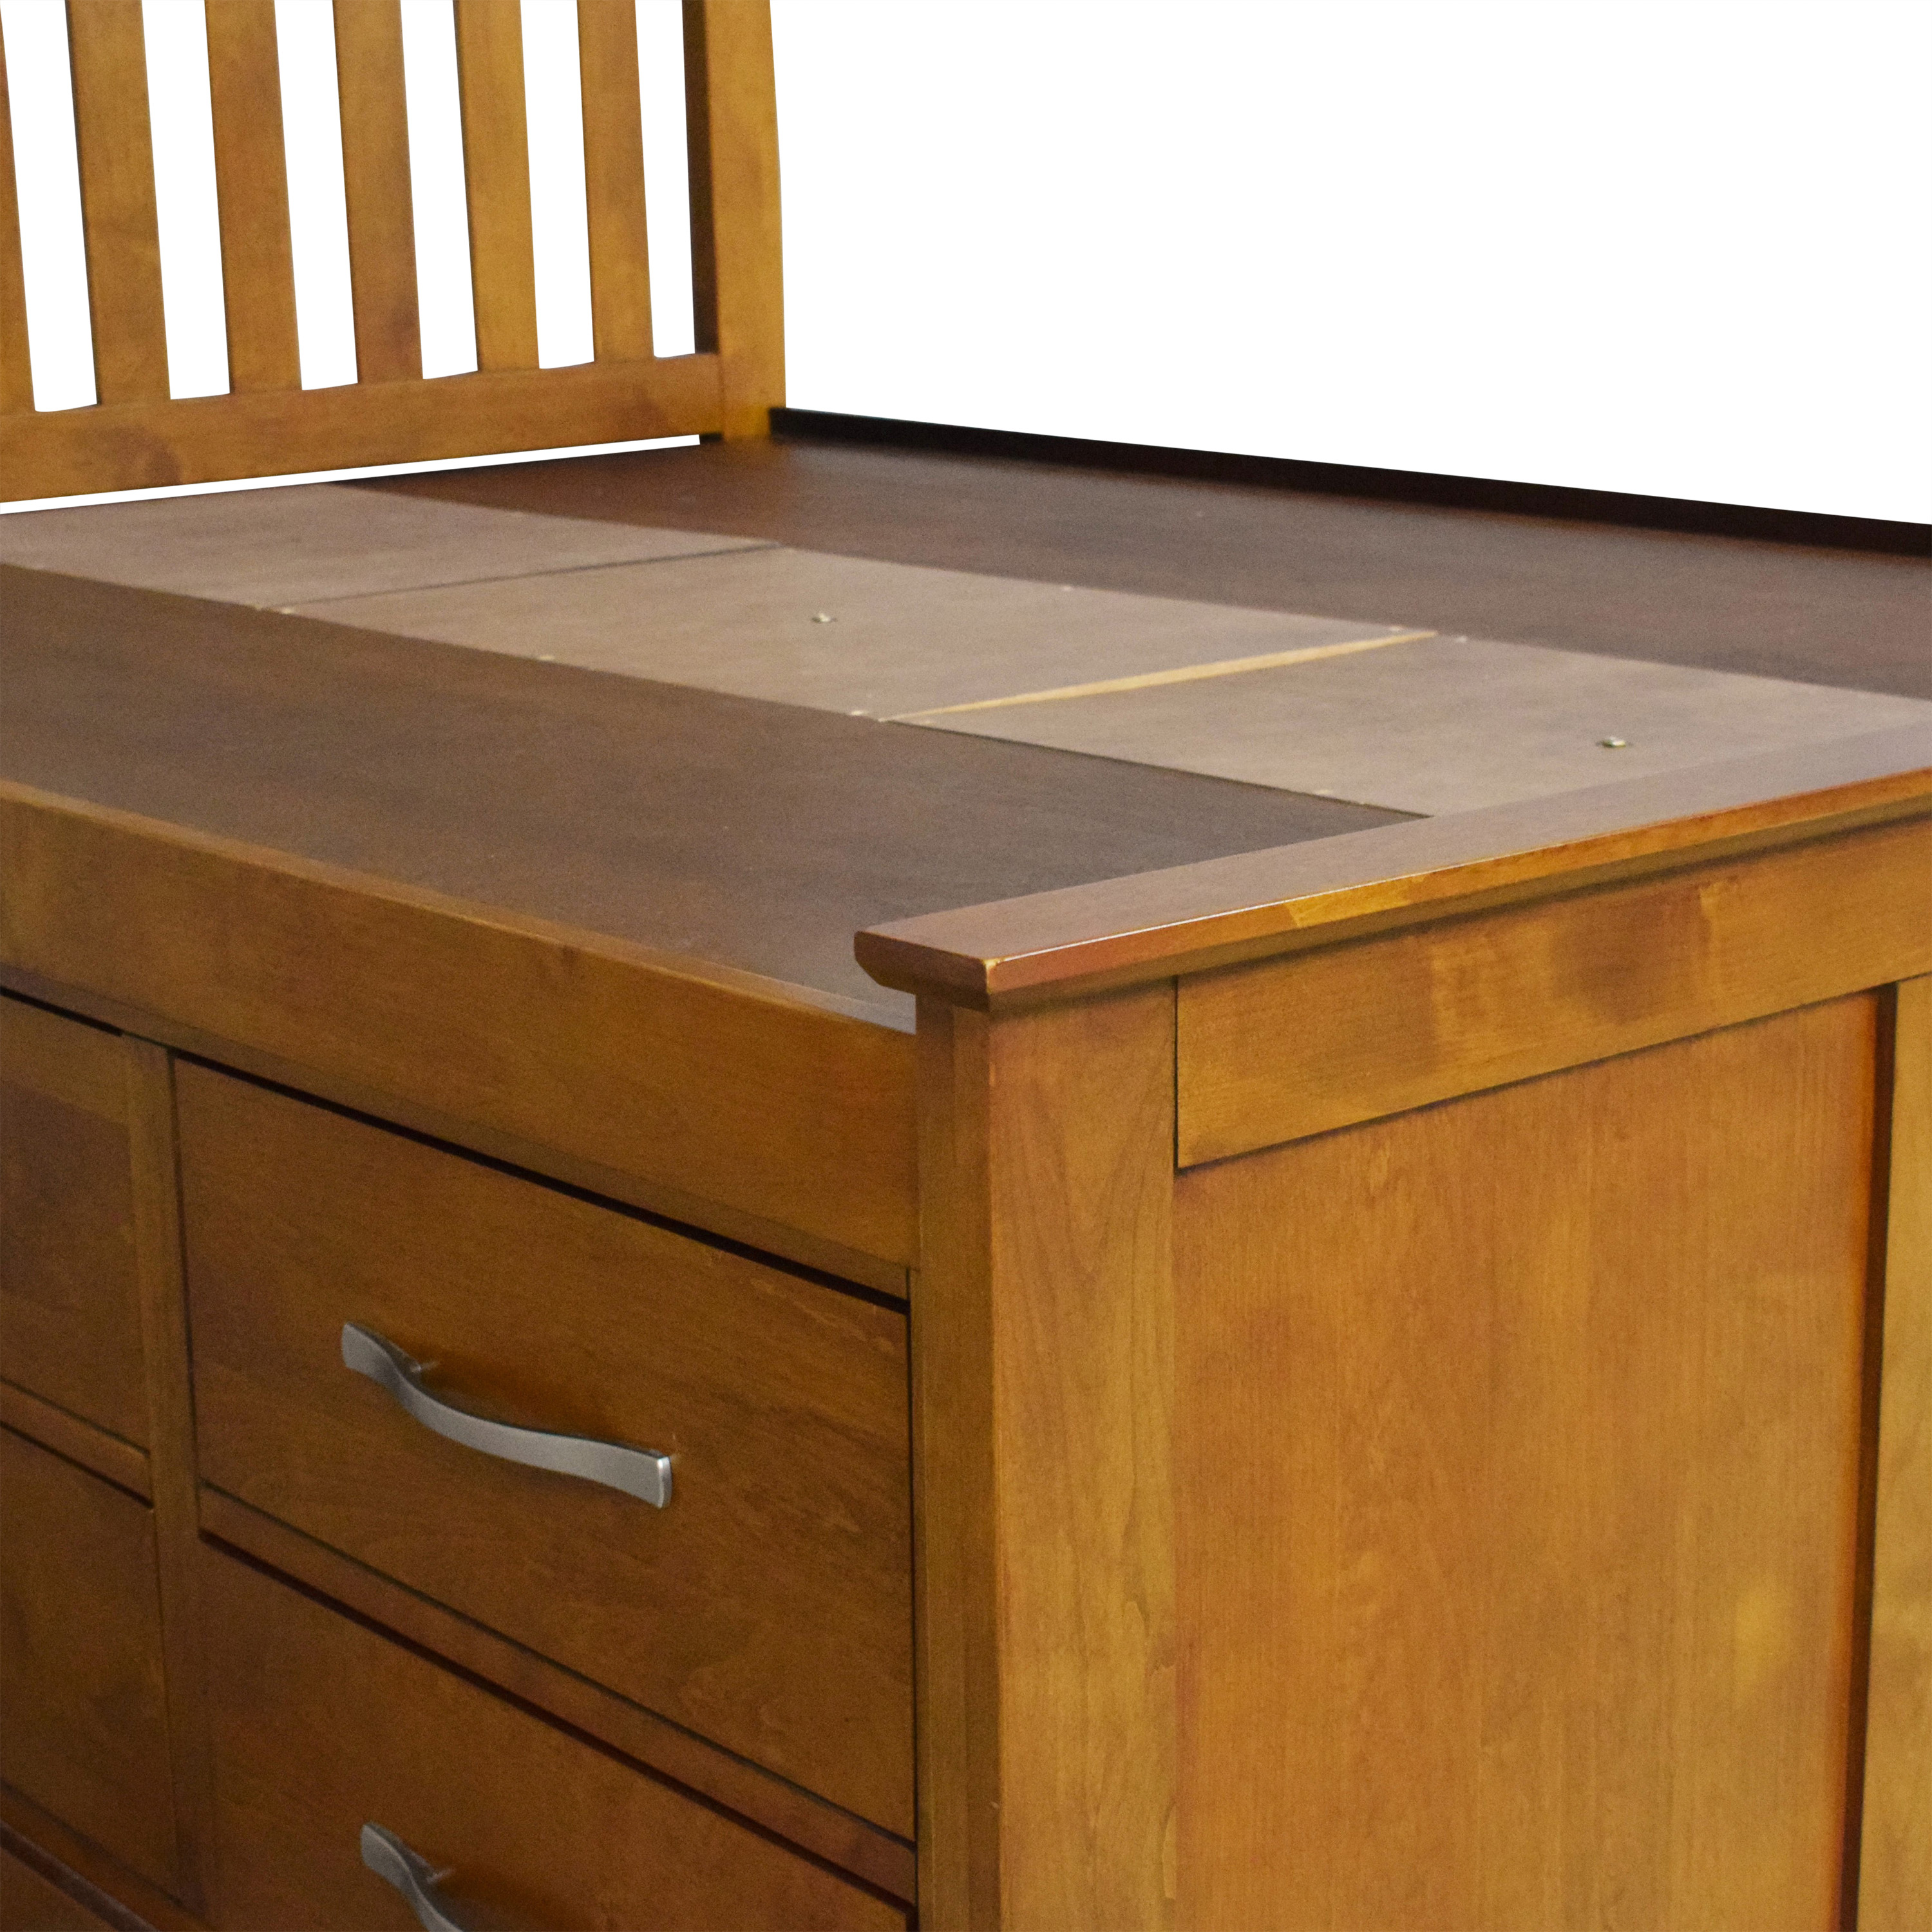 shop Raymour & Flanigan Captain's Full Bed Raymour & Flanigan Bed Frames